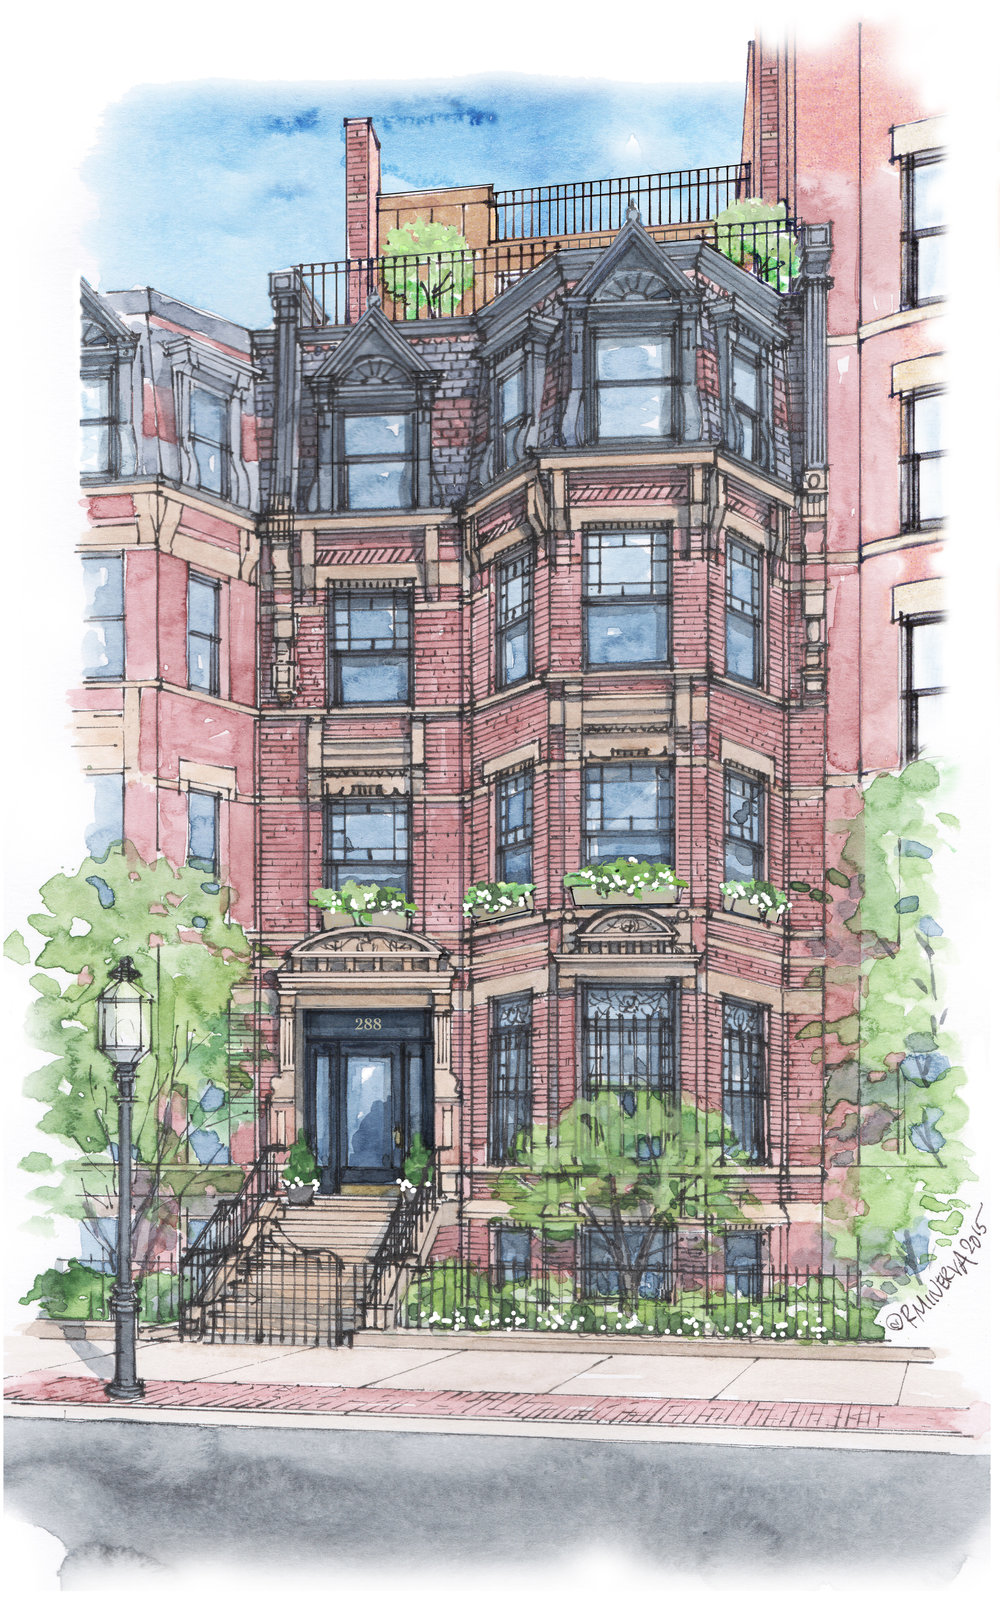 288comm-final-addition artist rendering.jpg